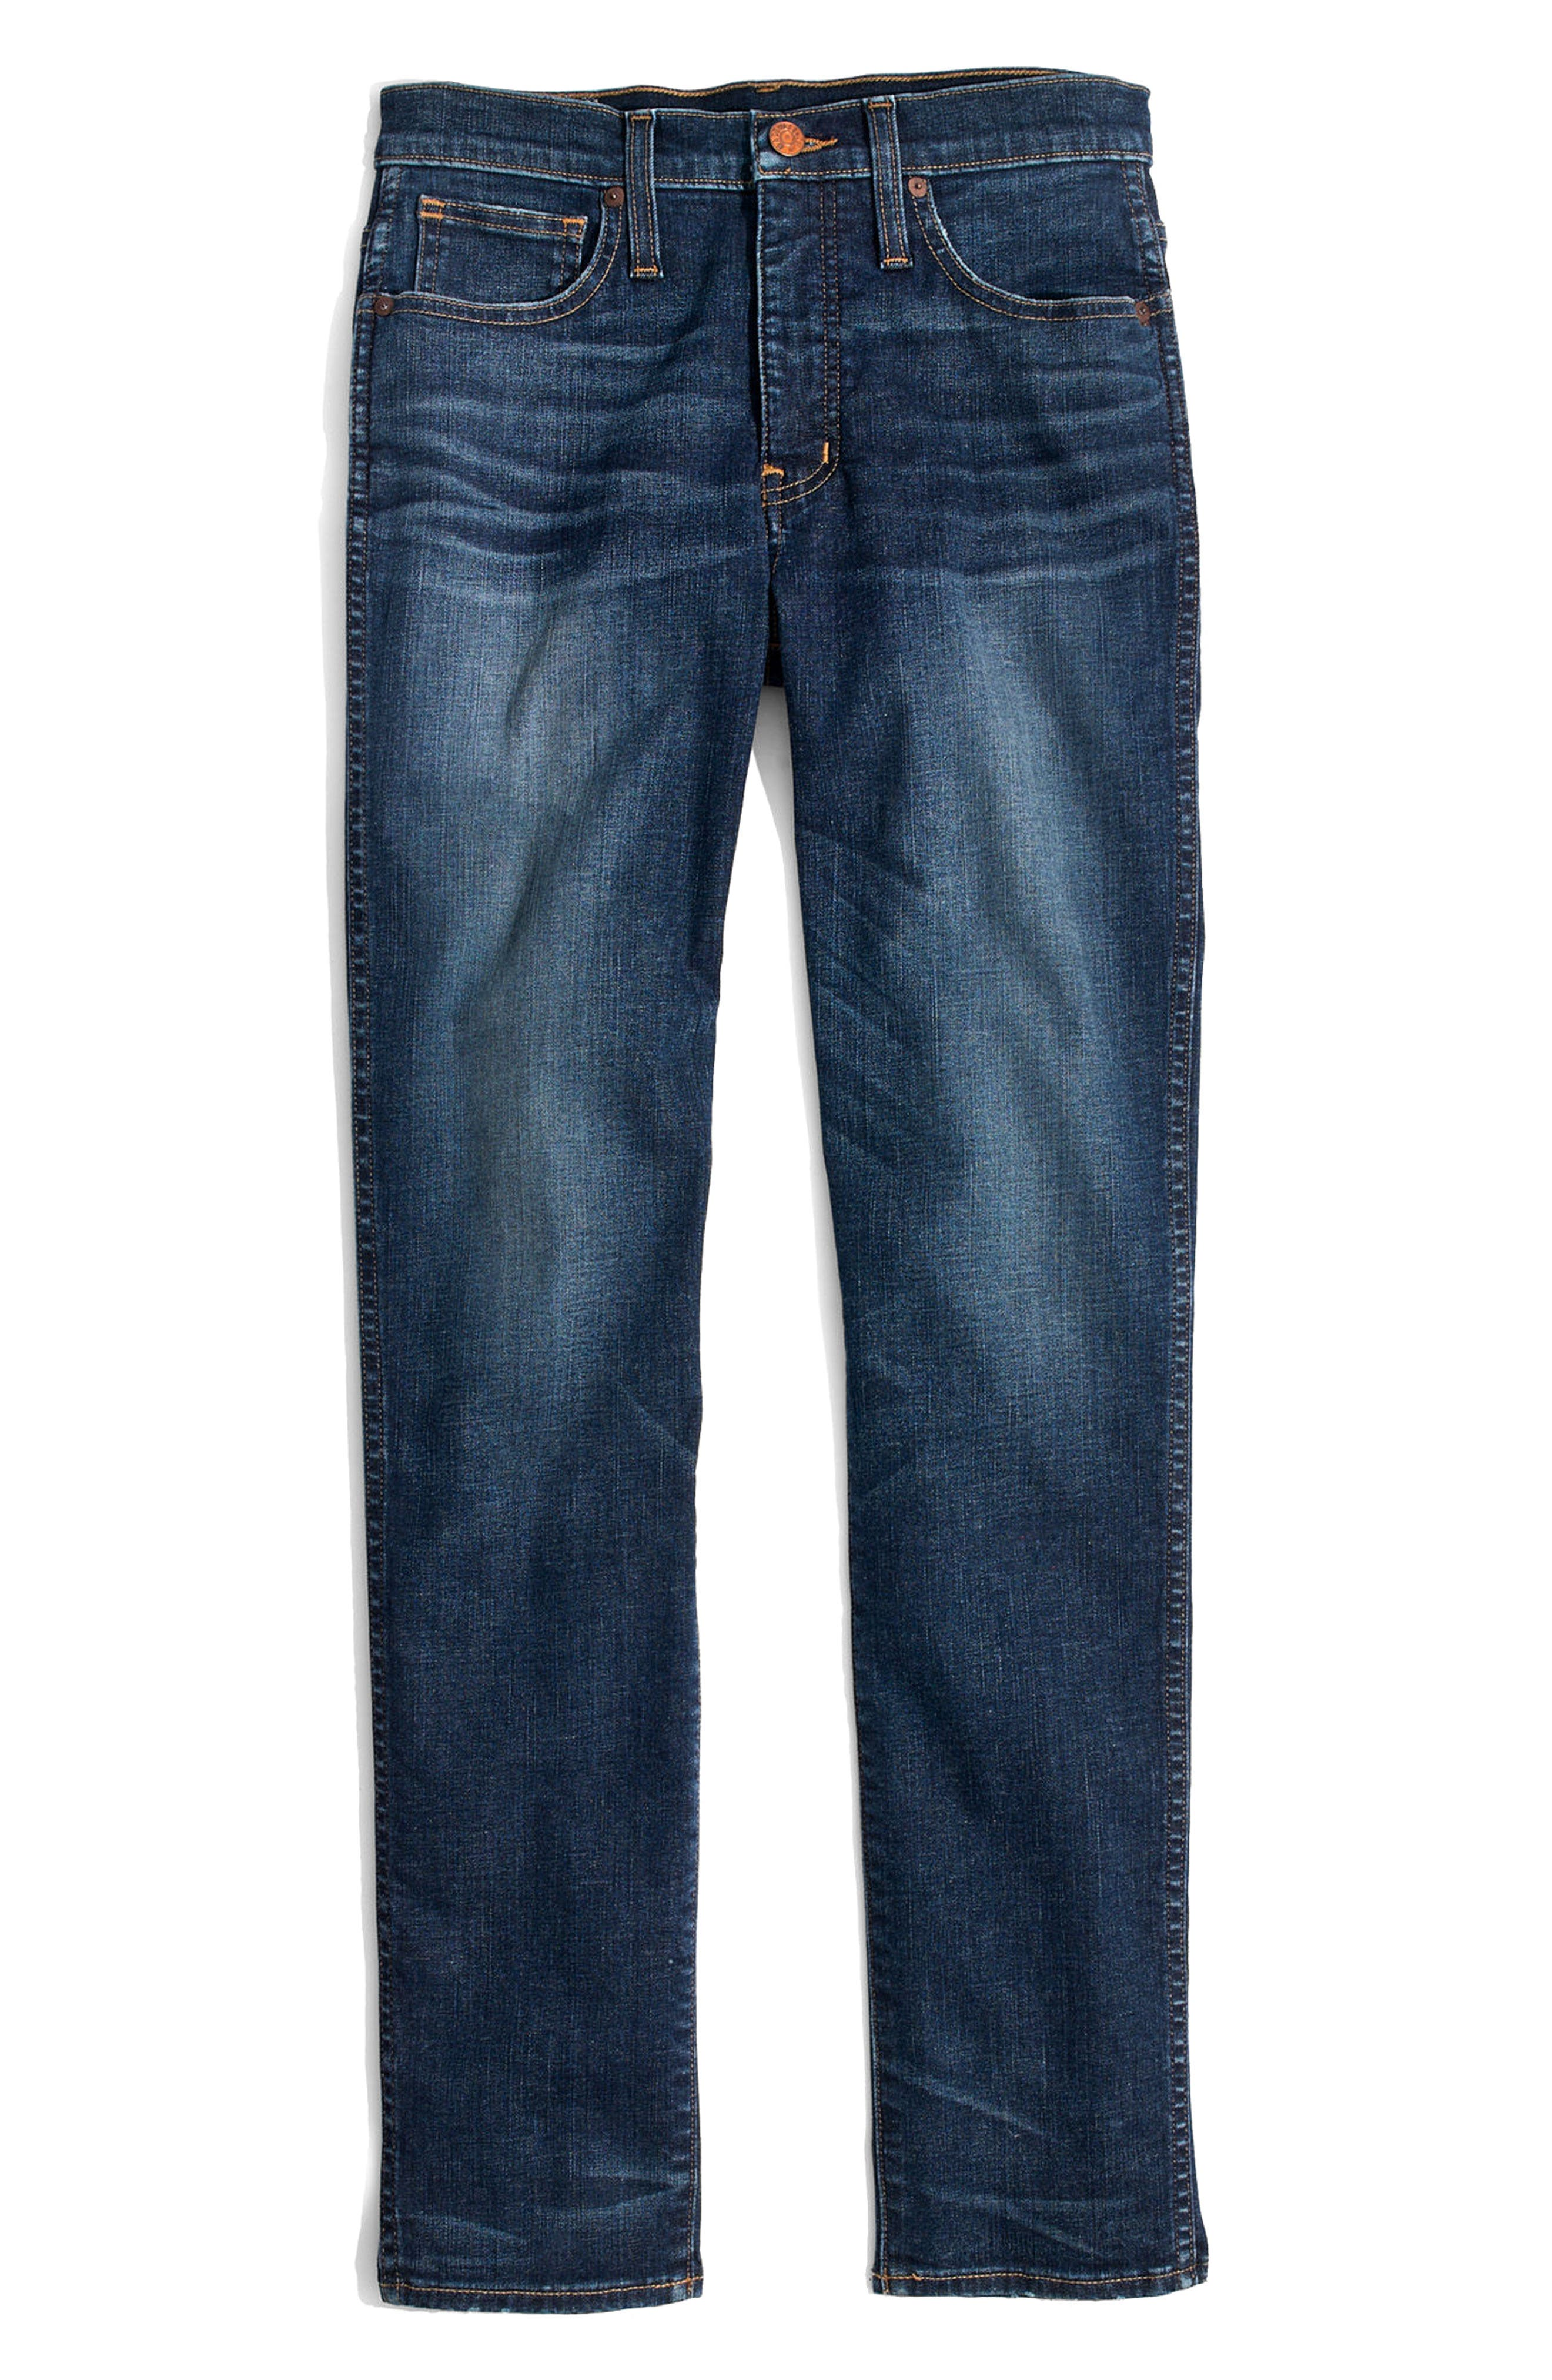 High Waist Slim Straight Leg Jeans,                             Alternate thumbnail 3, color,                             William Wash